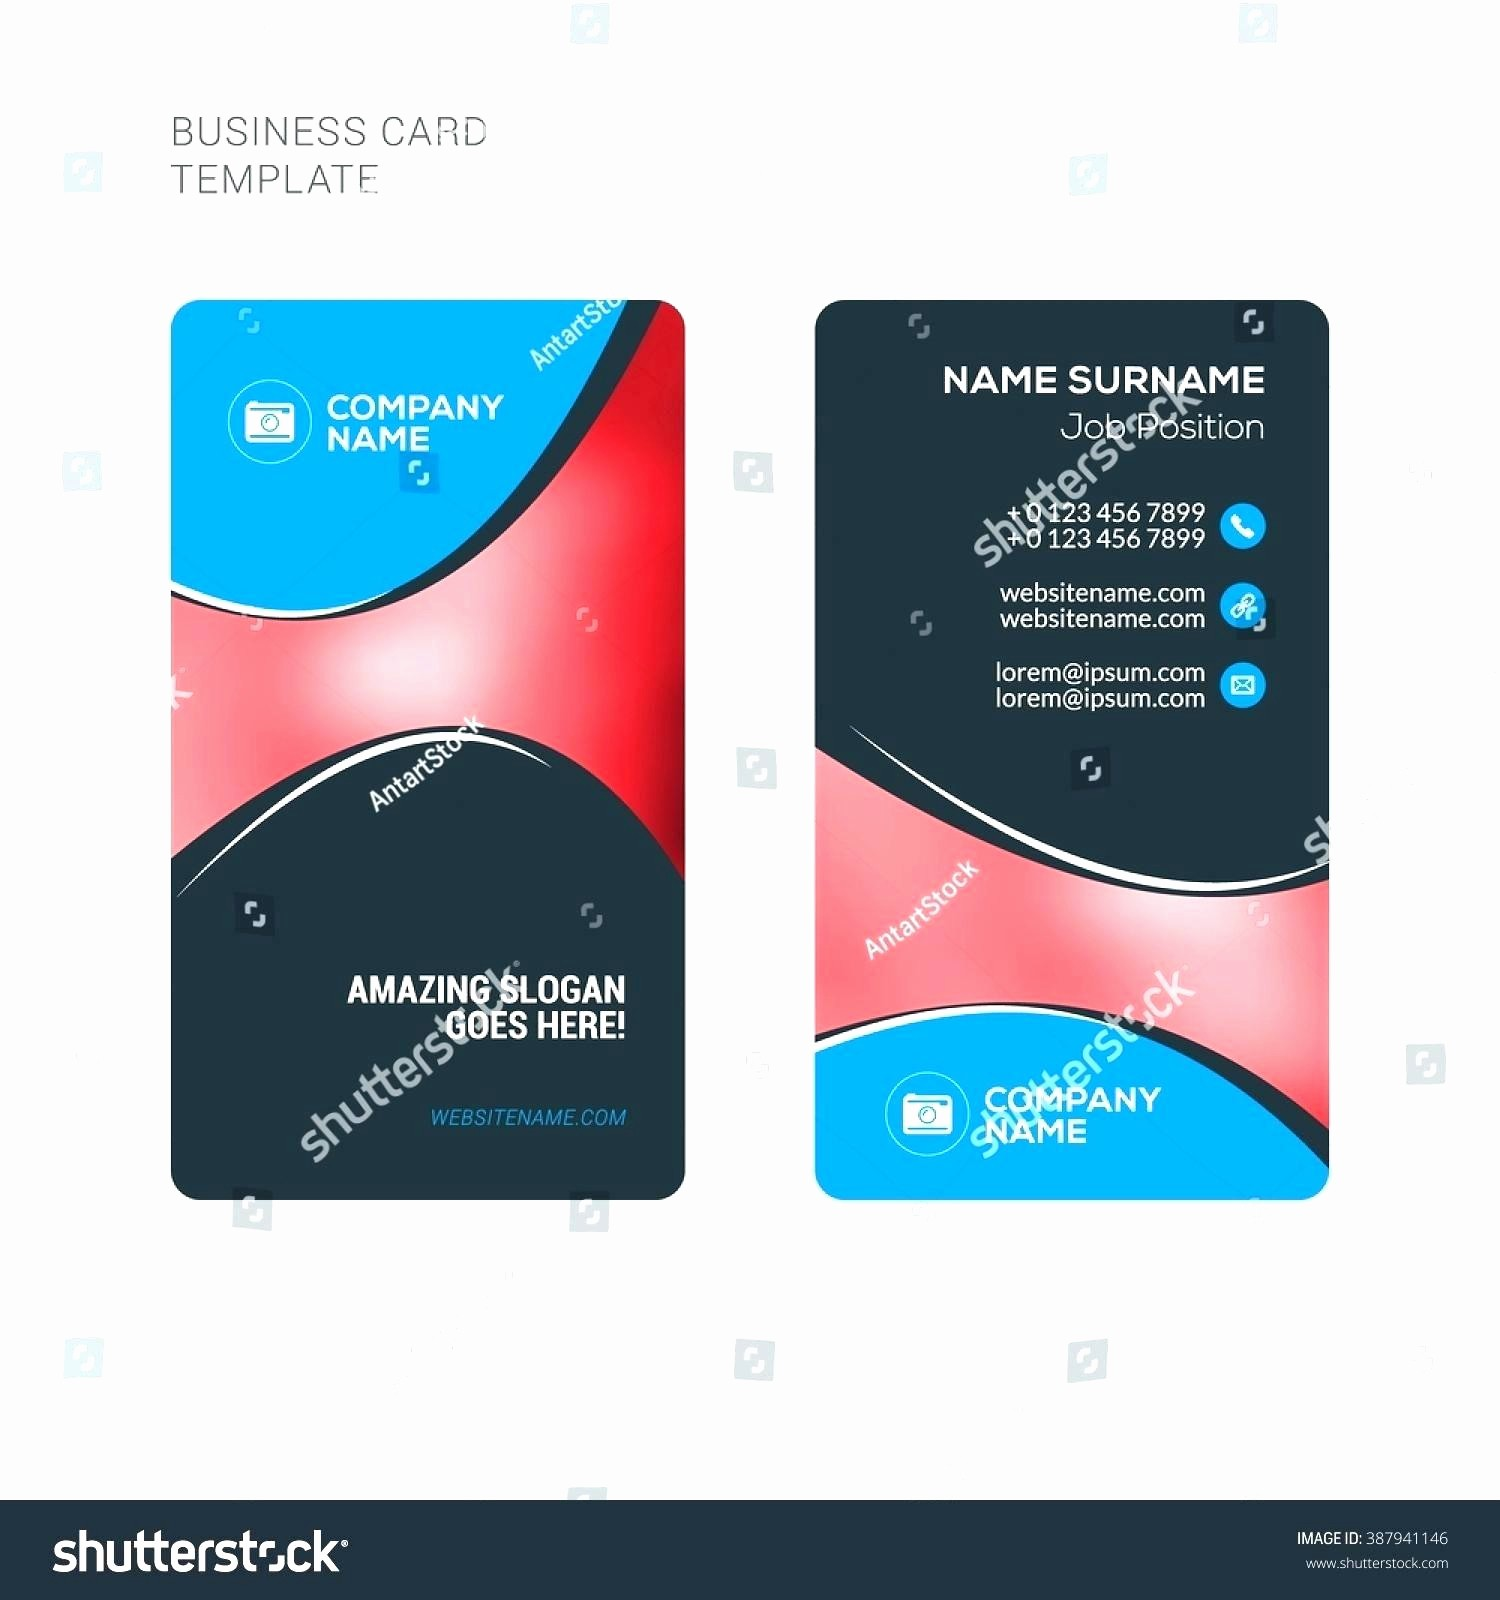 Ms Word Template Business Card Awesome 2 Sided Business Card Template